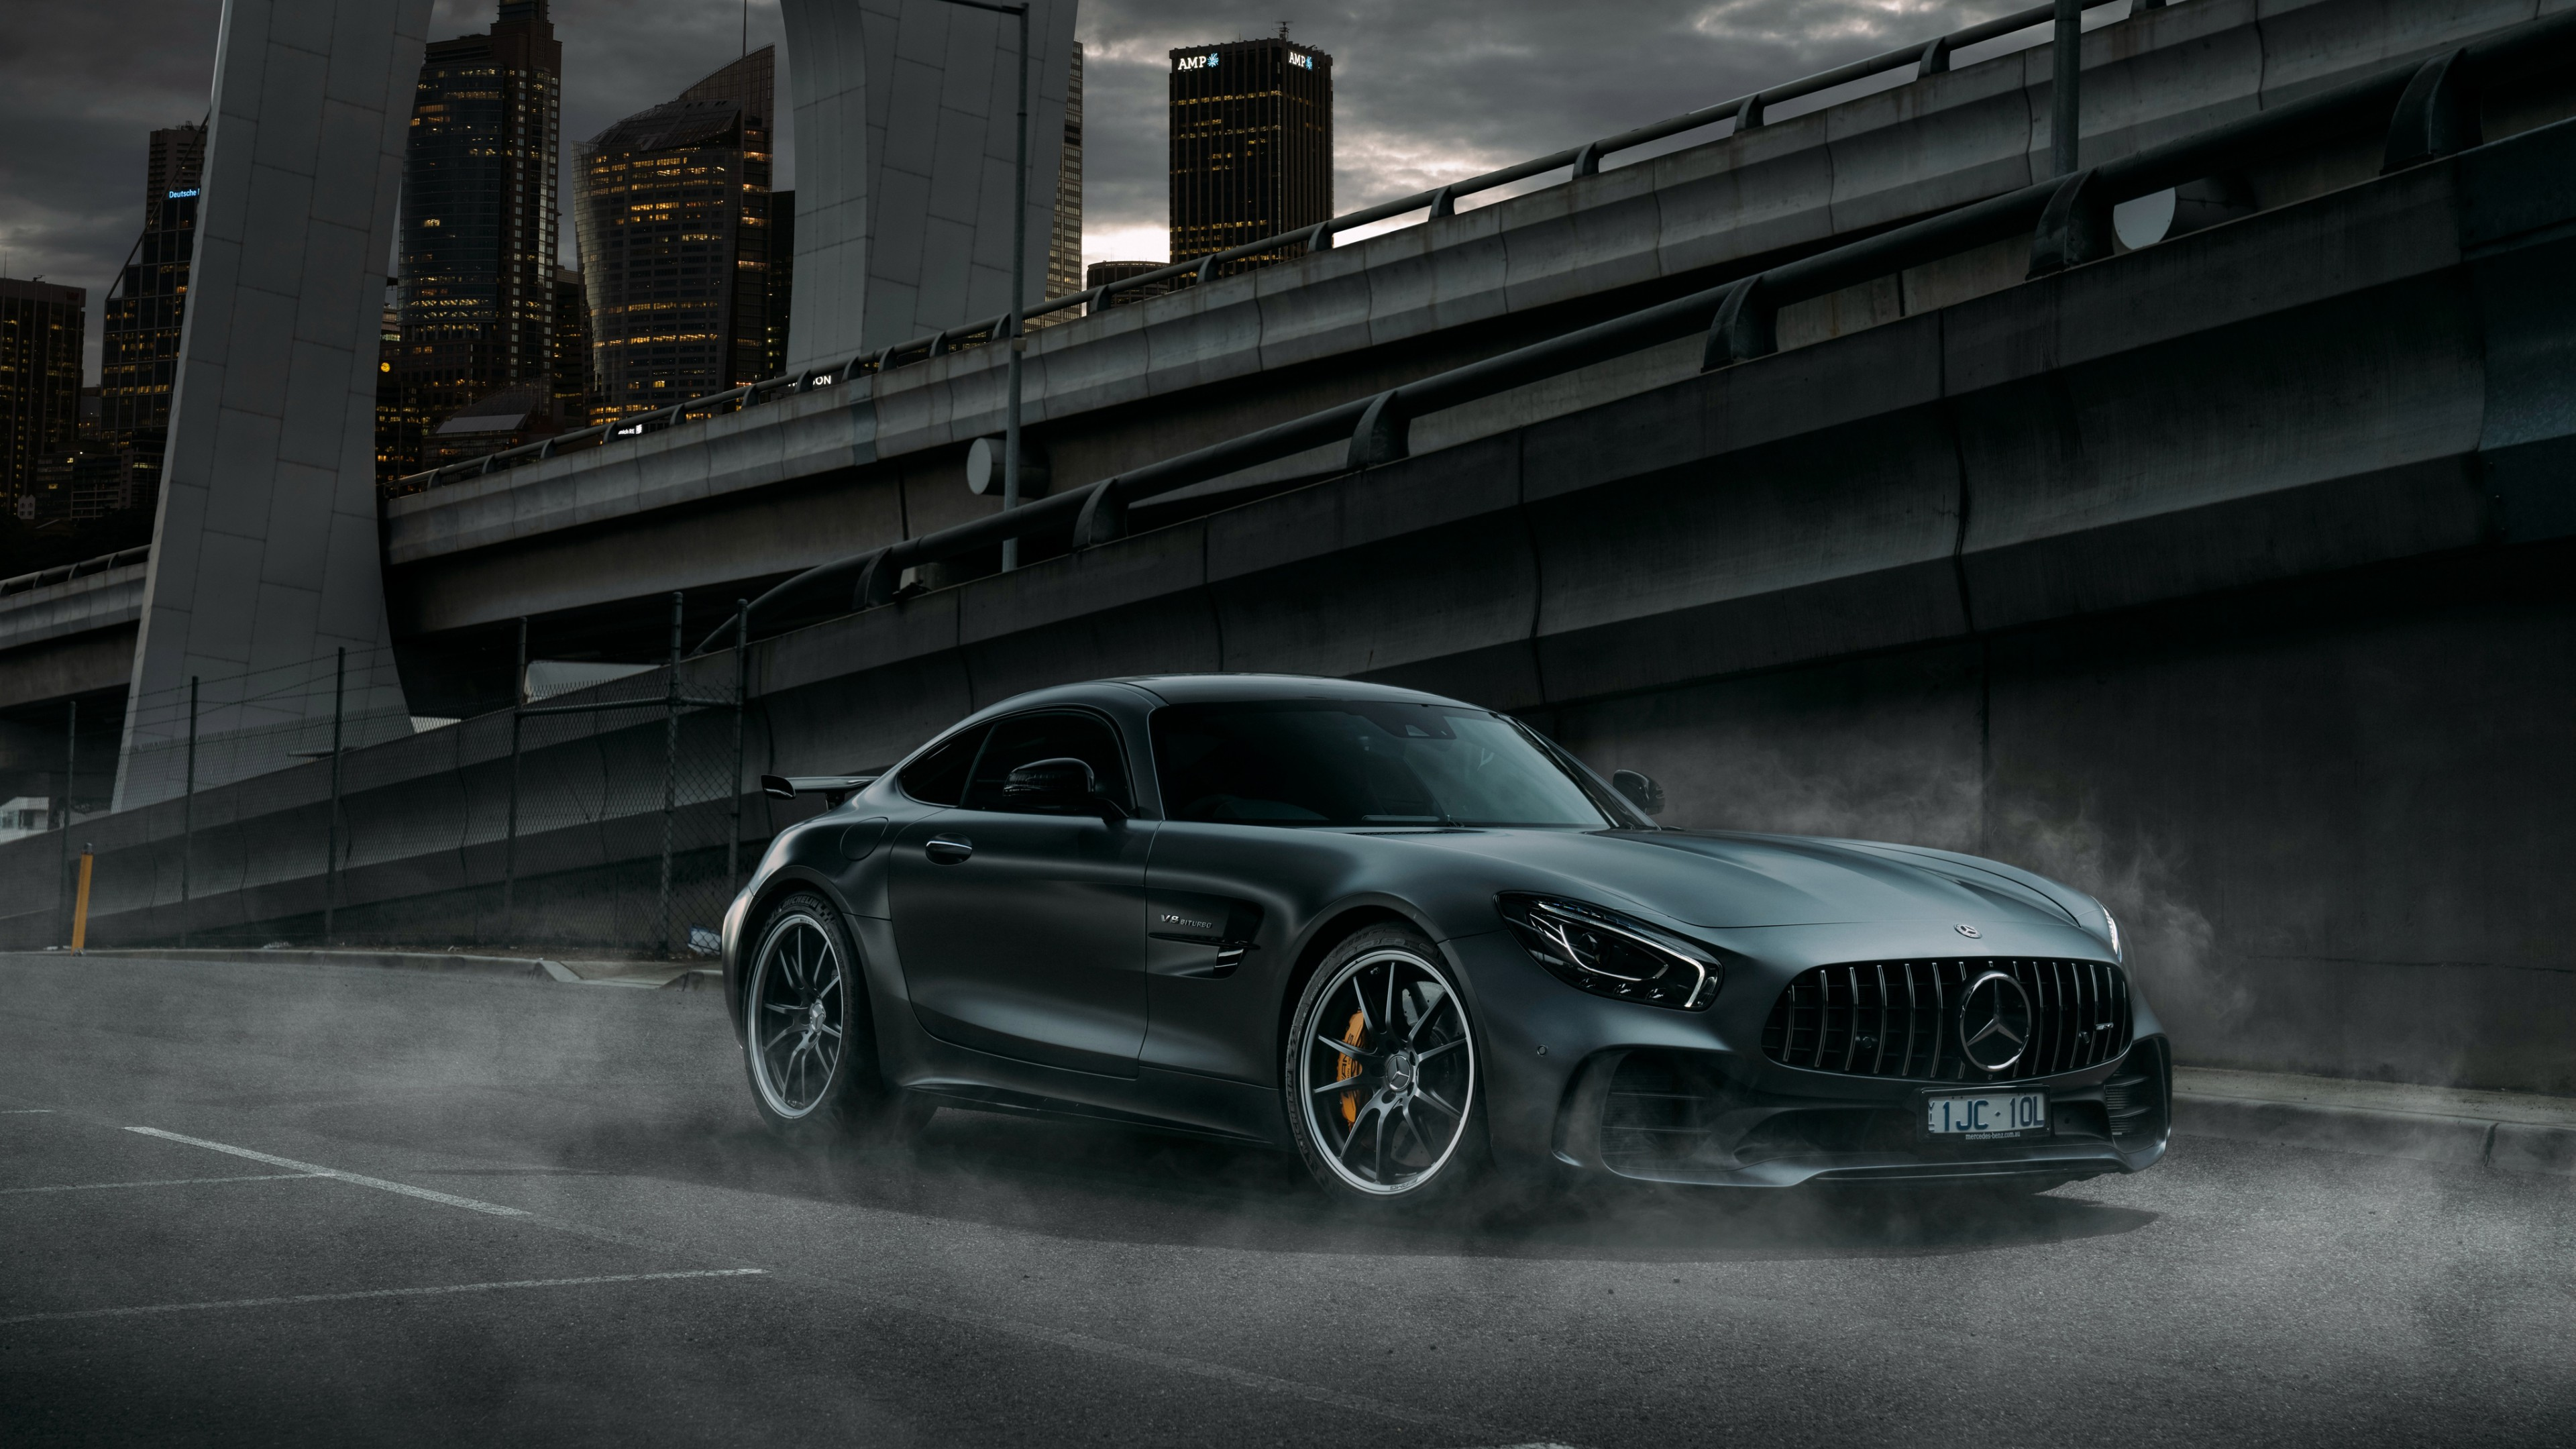 Free Download Mercedes Amg Gt And Benz Car Wallpaper For